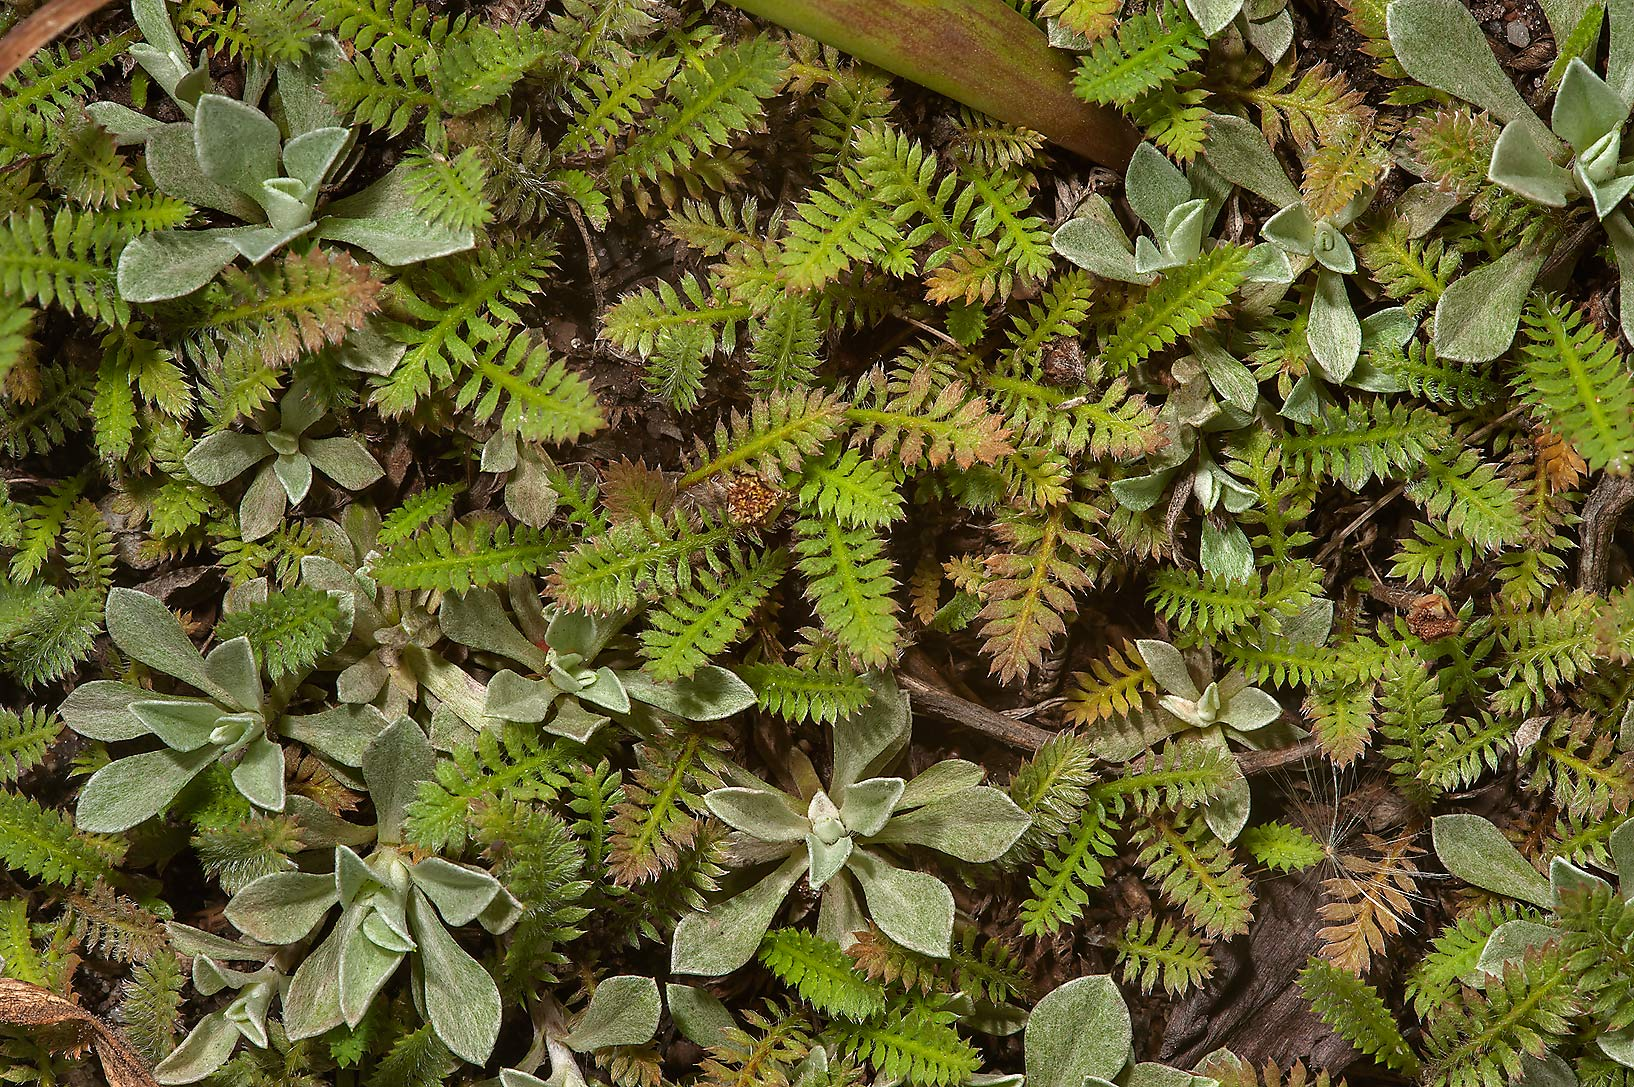 Carpet of fern like leaves in Botanic Gardens of...Institute. St.Petersburg, Russia